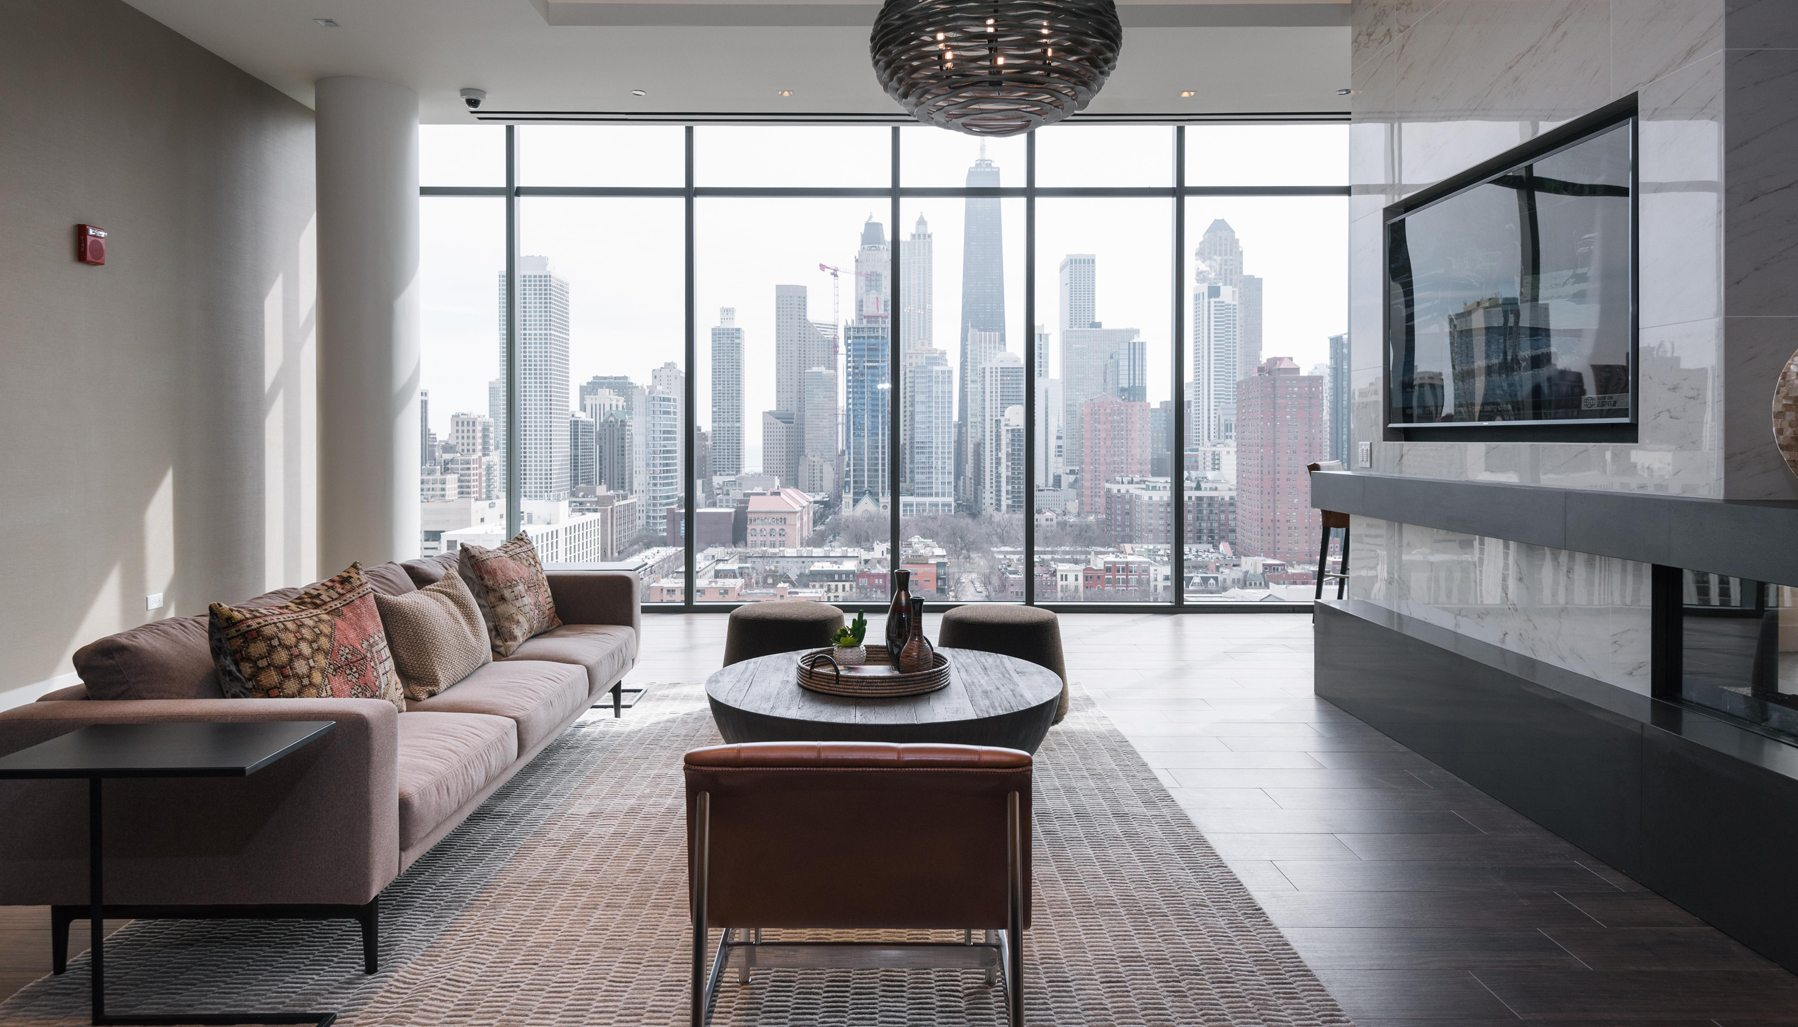 Things to be Considered for Renting a Luxury Apartment in Chicago